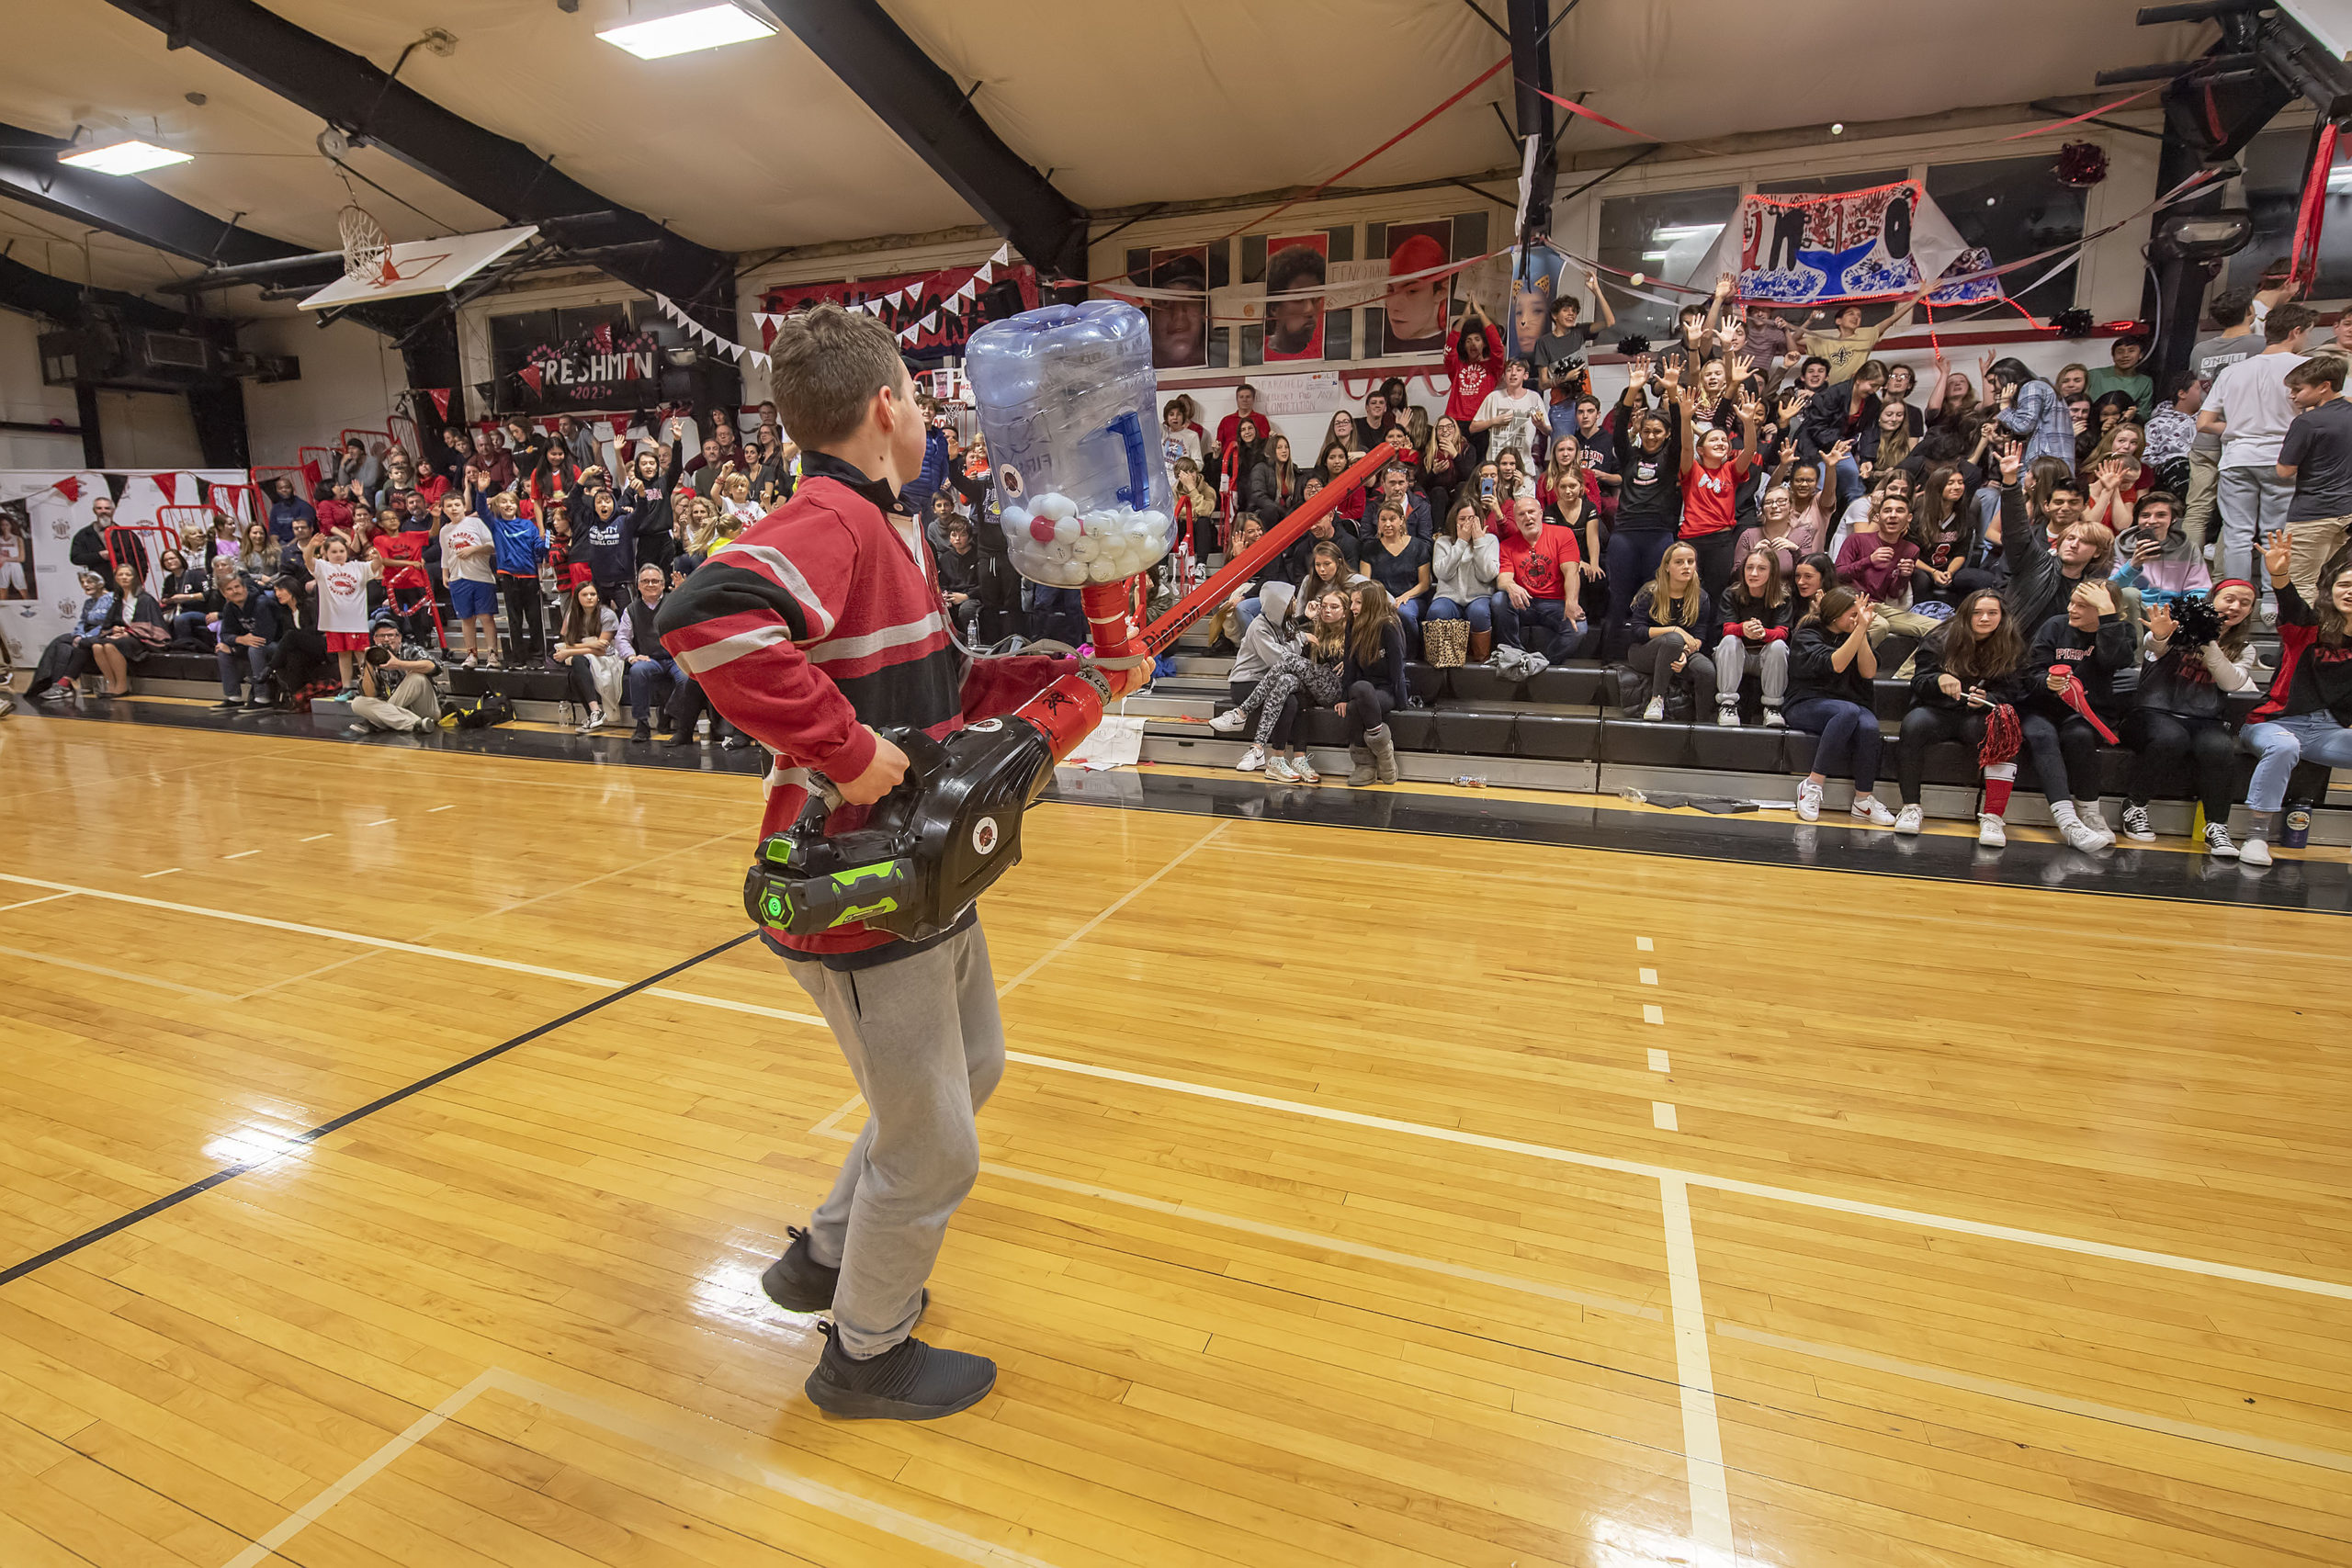 A member of the Pierson Robotics Team shoots ping pong balls into the crowd during a halftime demonstration as part of the 2020 Spirit Night festivities at Pierson High School on Friday night.